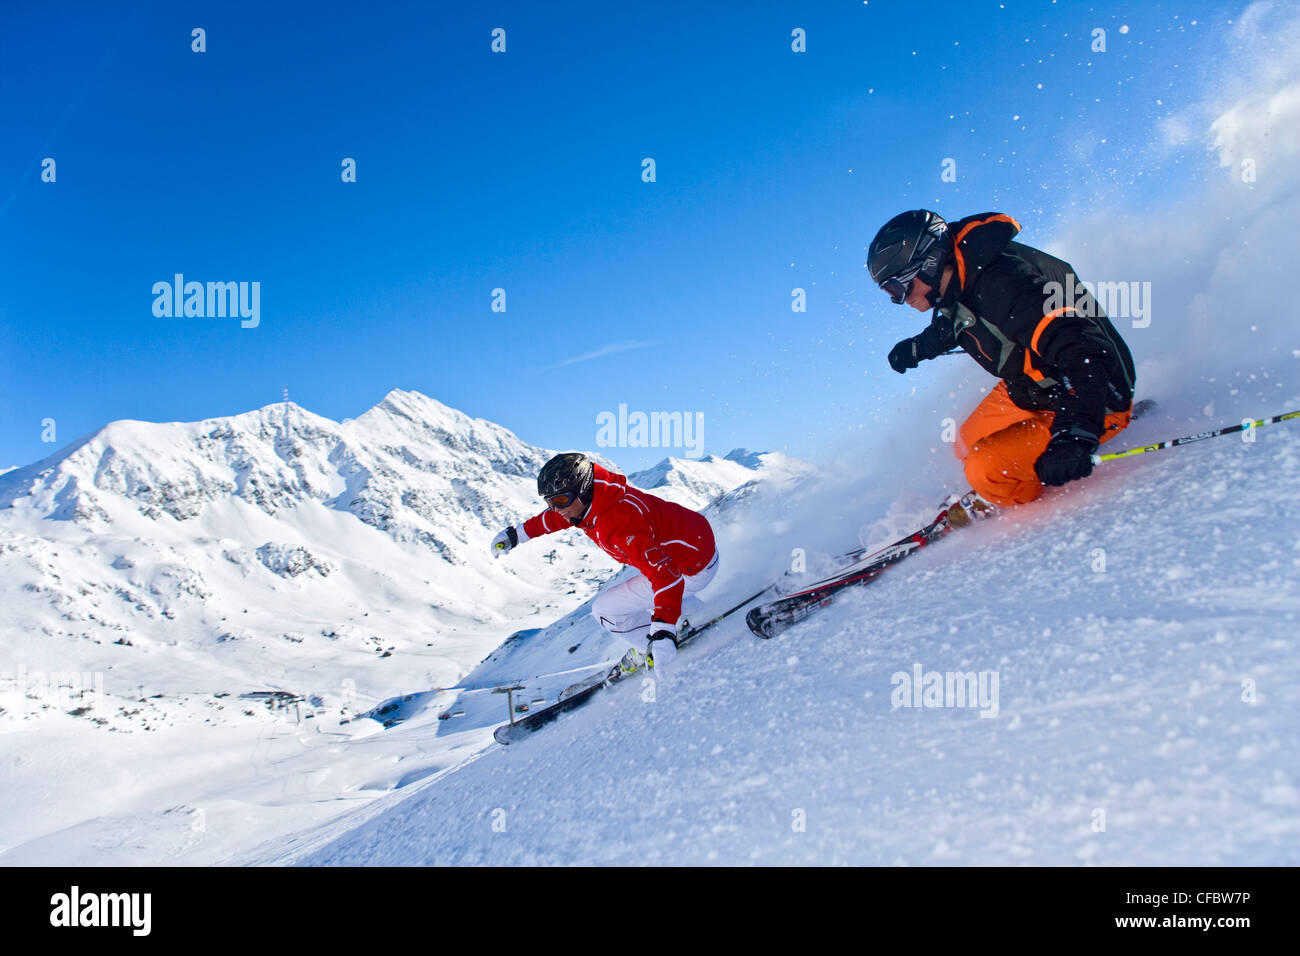 Carving skiing extreme man woman ski winter sports